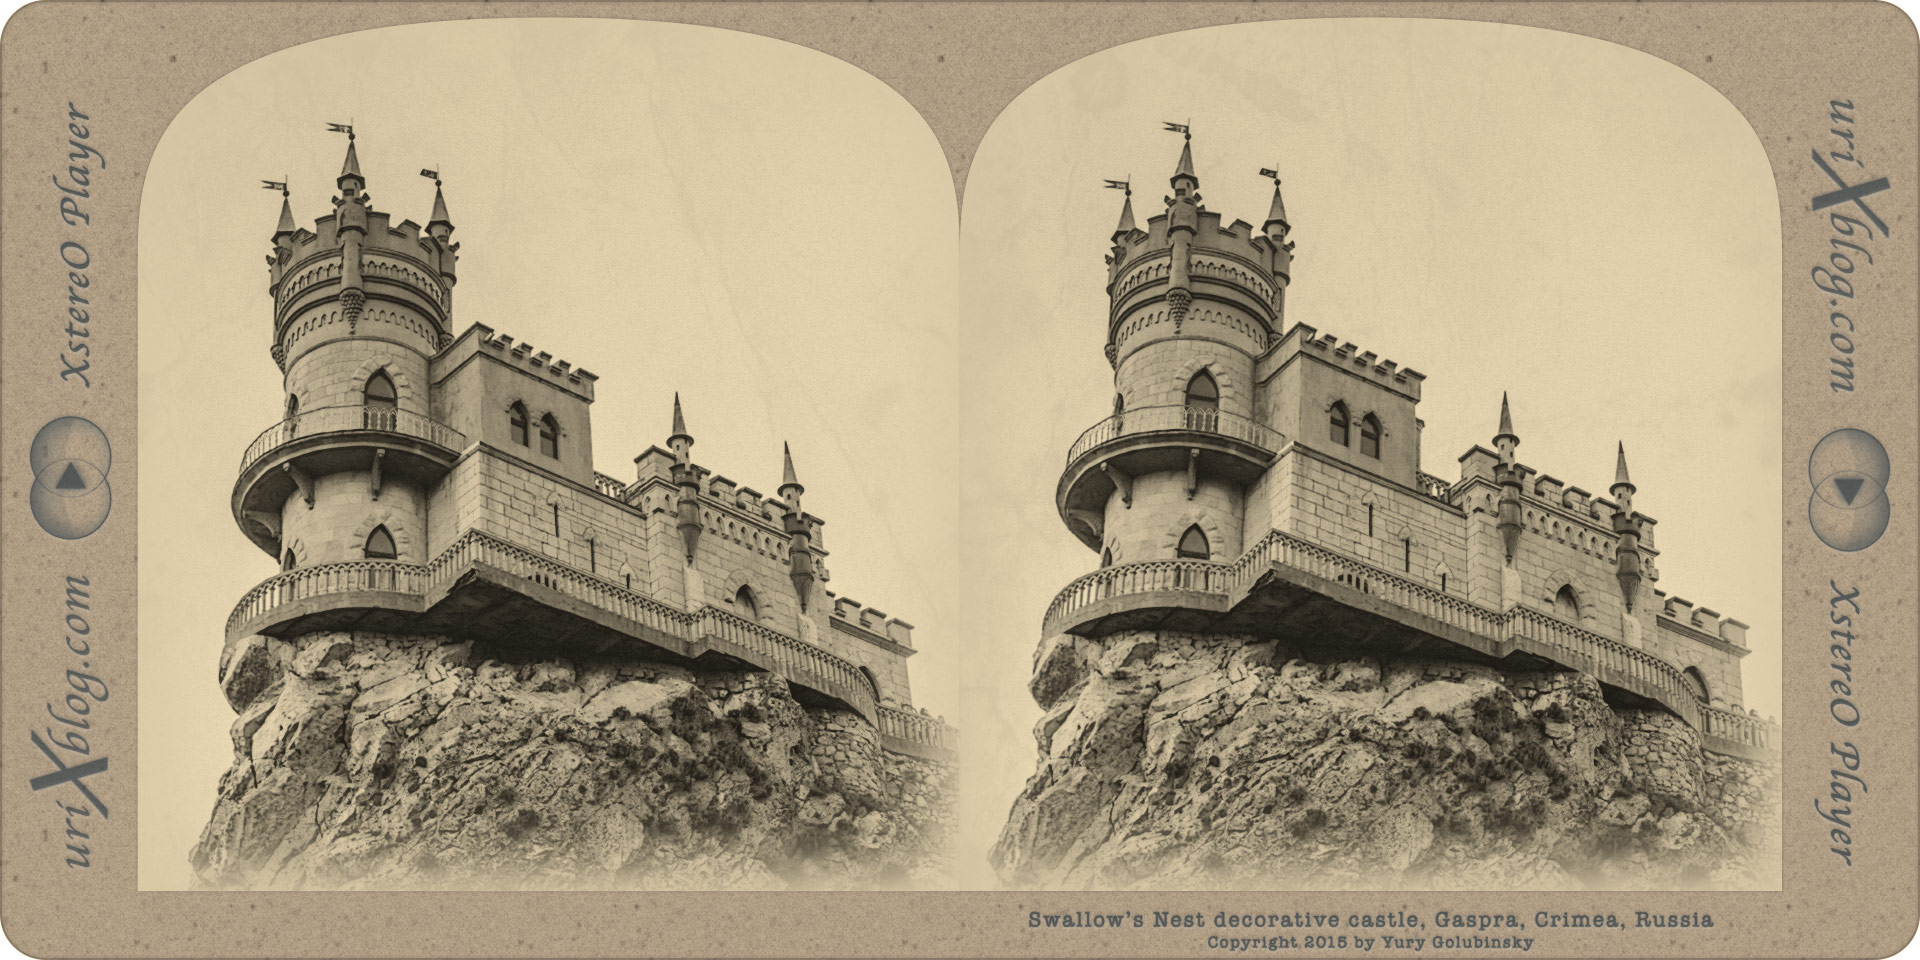 Swallow's Nest, decorative castle, cliff, rock, Crimea, Russia, Gaspra, Yalta, Alupka, 2015, stereocard, 3D, stereo